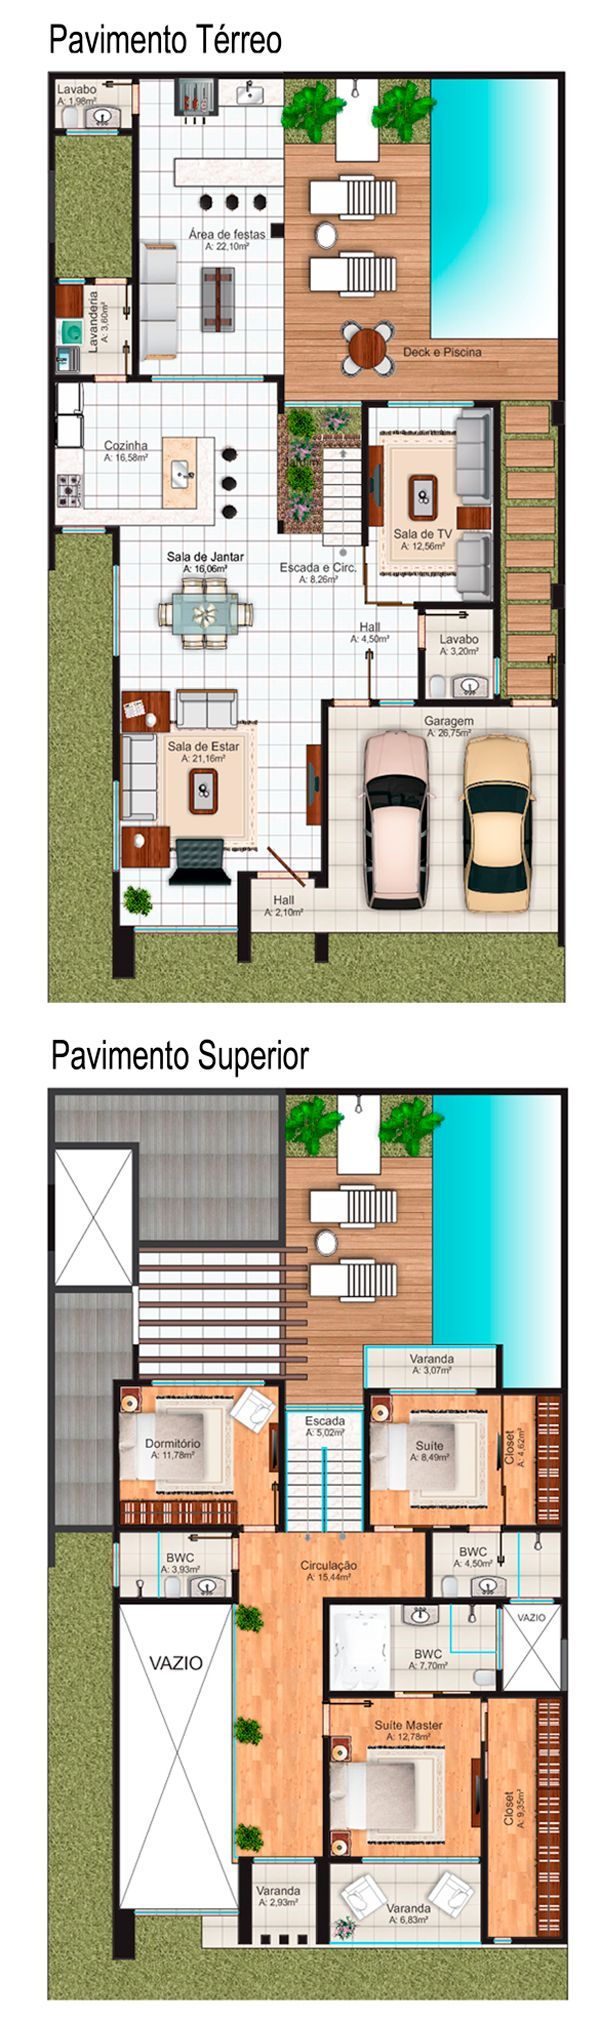 House Plans With Apartment Suites ~ Discover Your House Plans Here